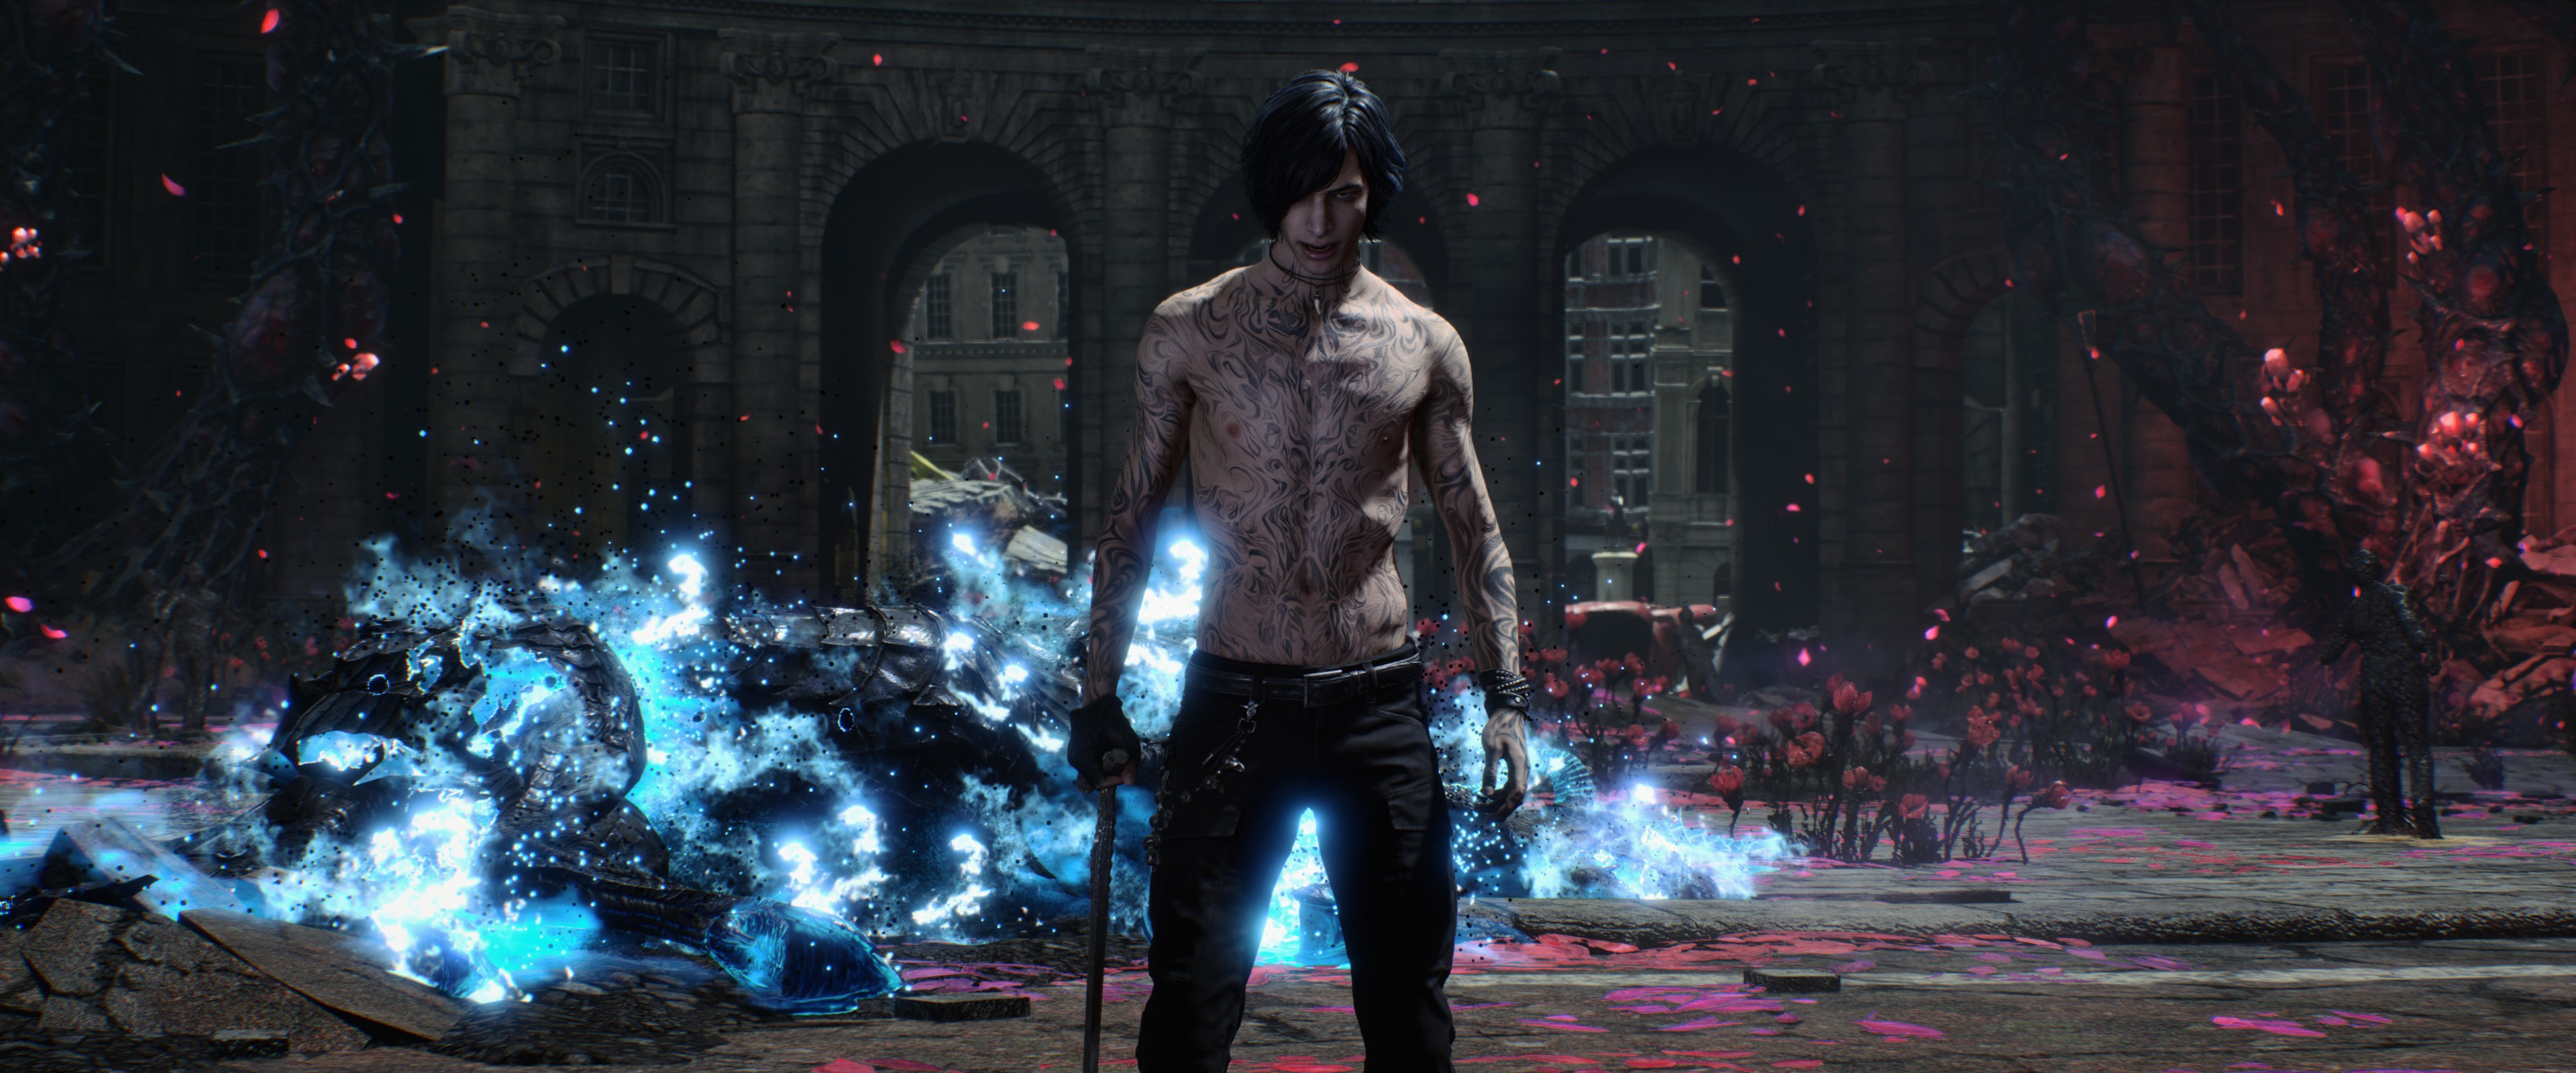 Devil May Cry 5 Hd Wallpaper Background Image 3840x1600 Id